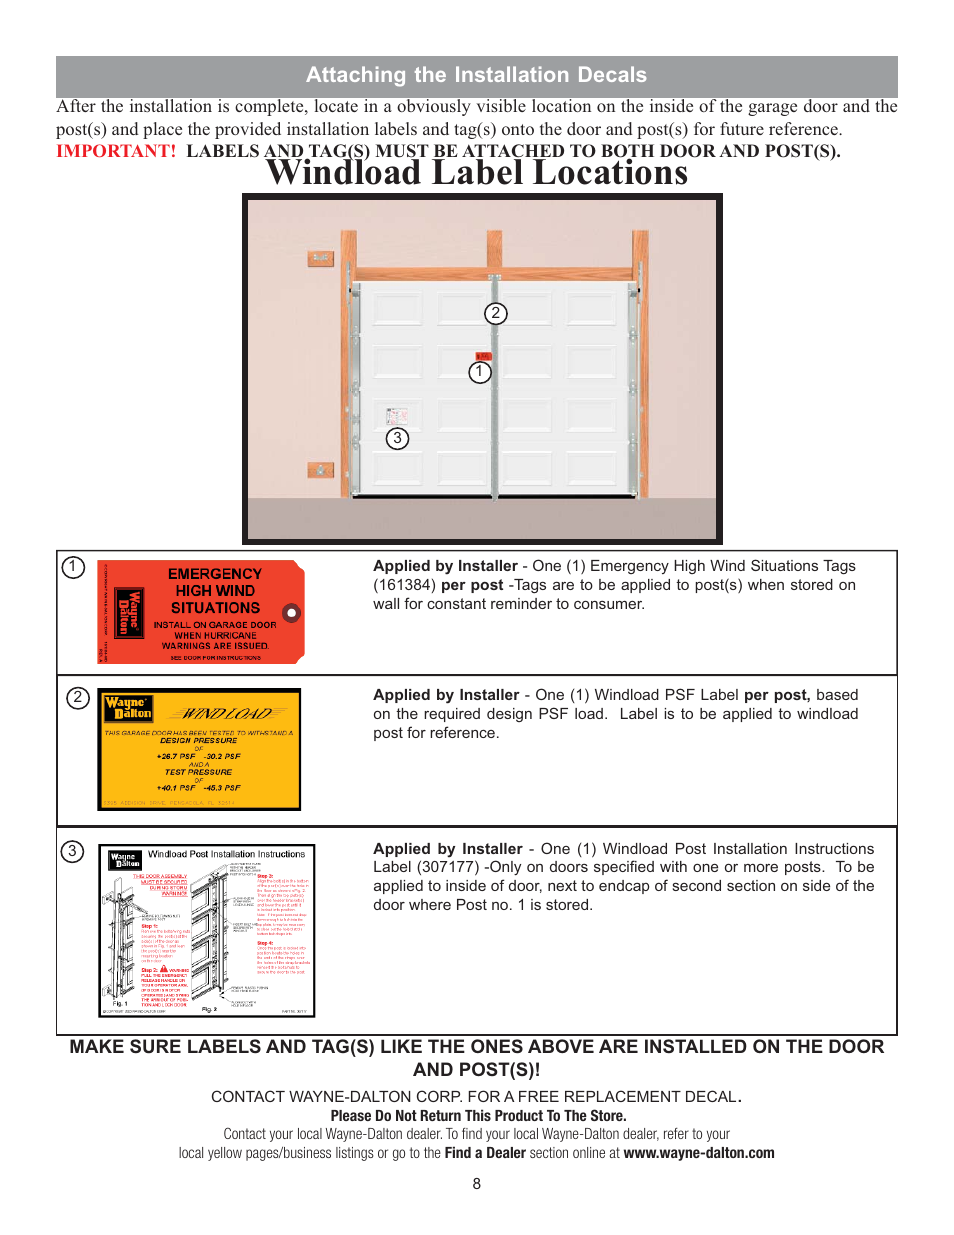 Windload Label Locations Attaching The Installation Decals Wayne